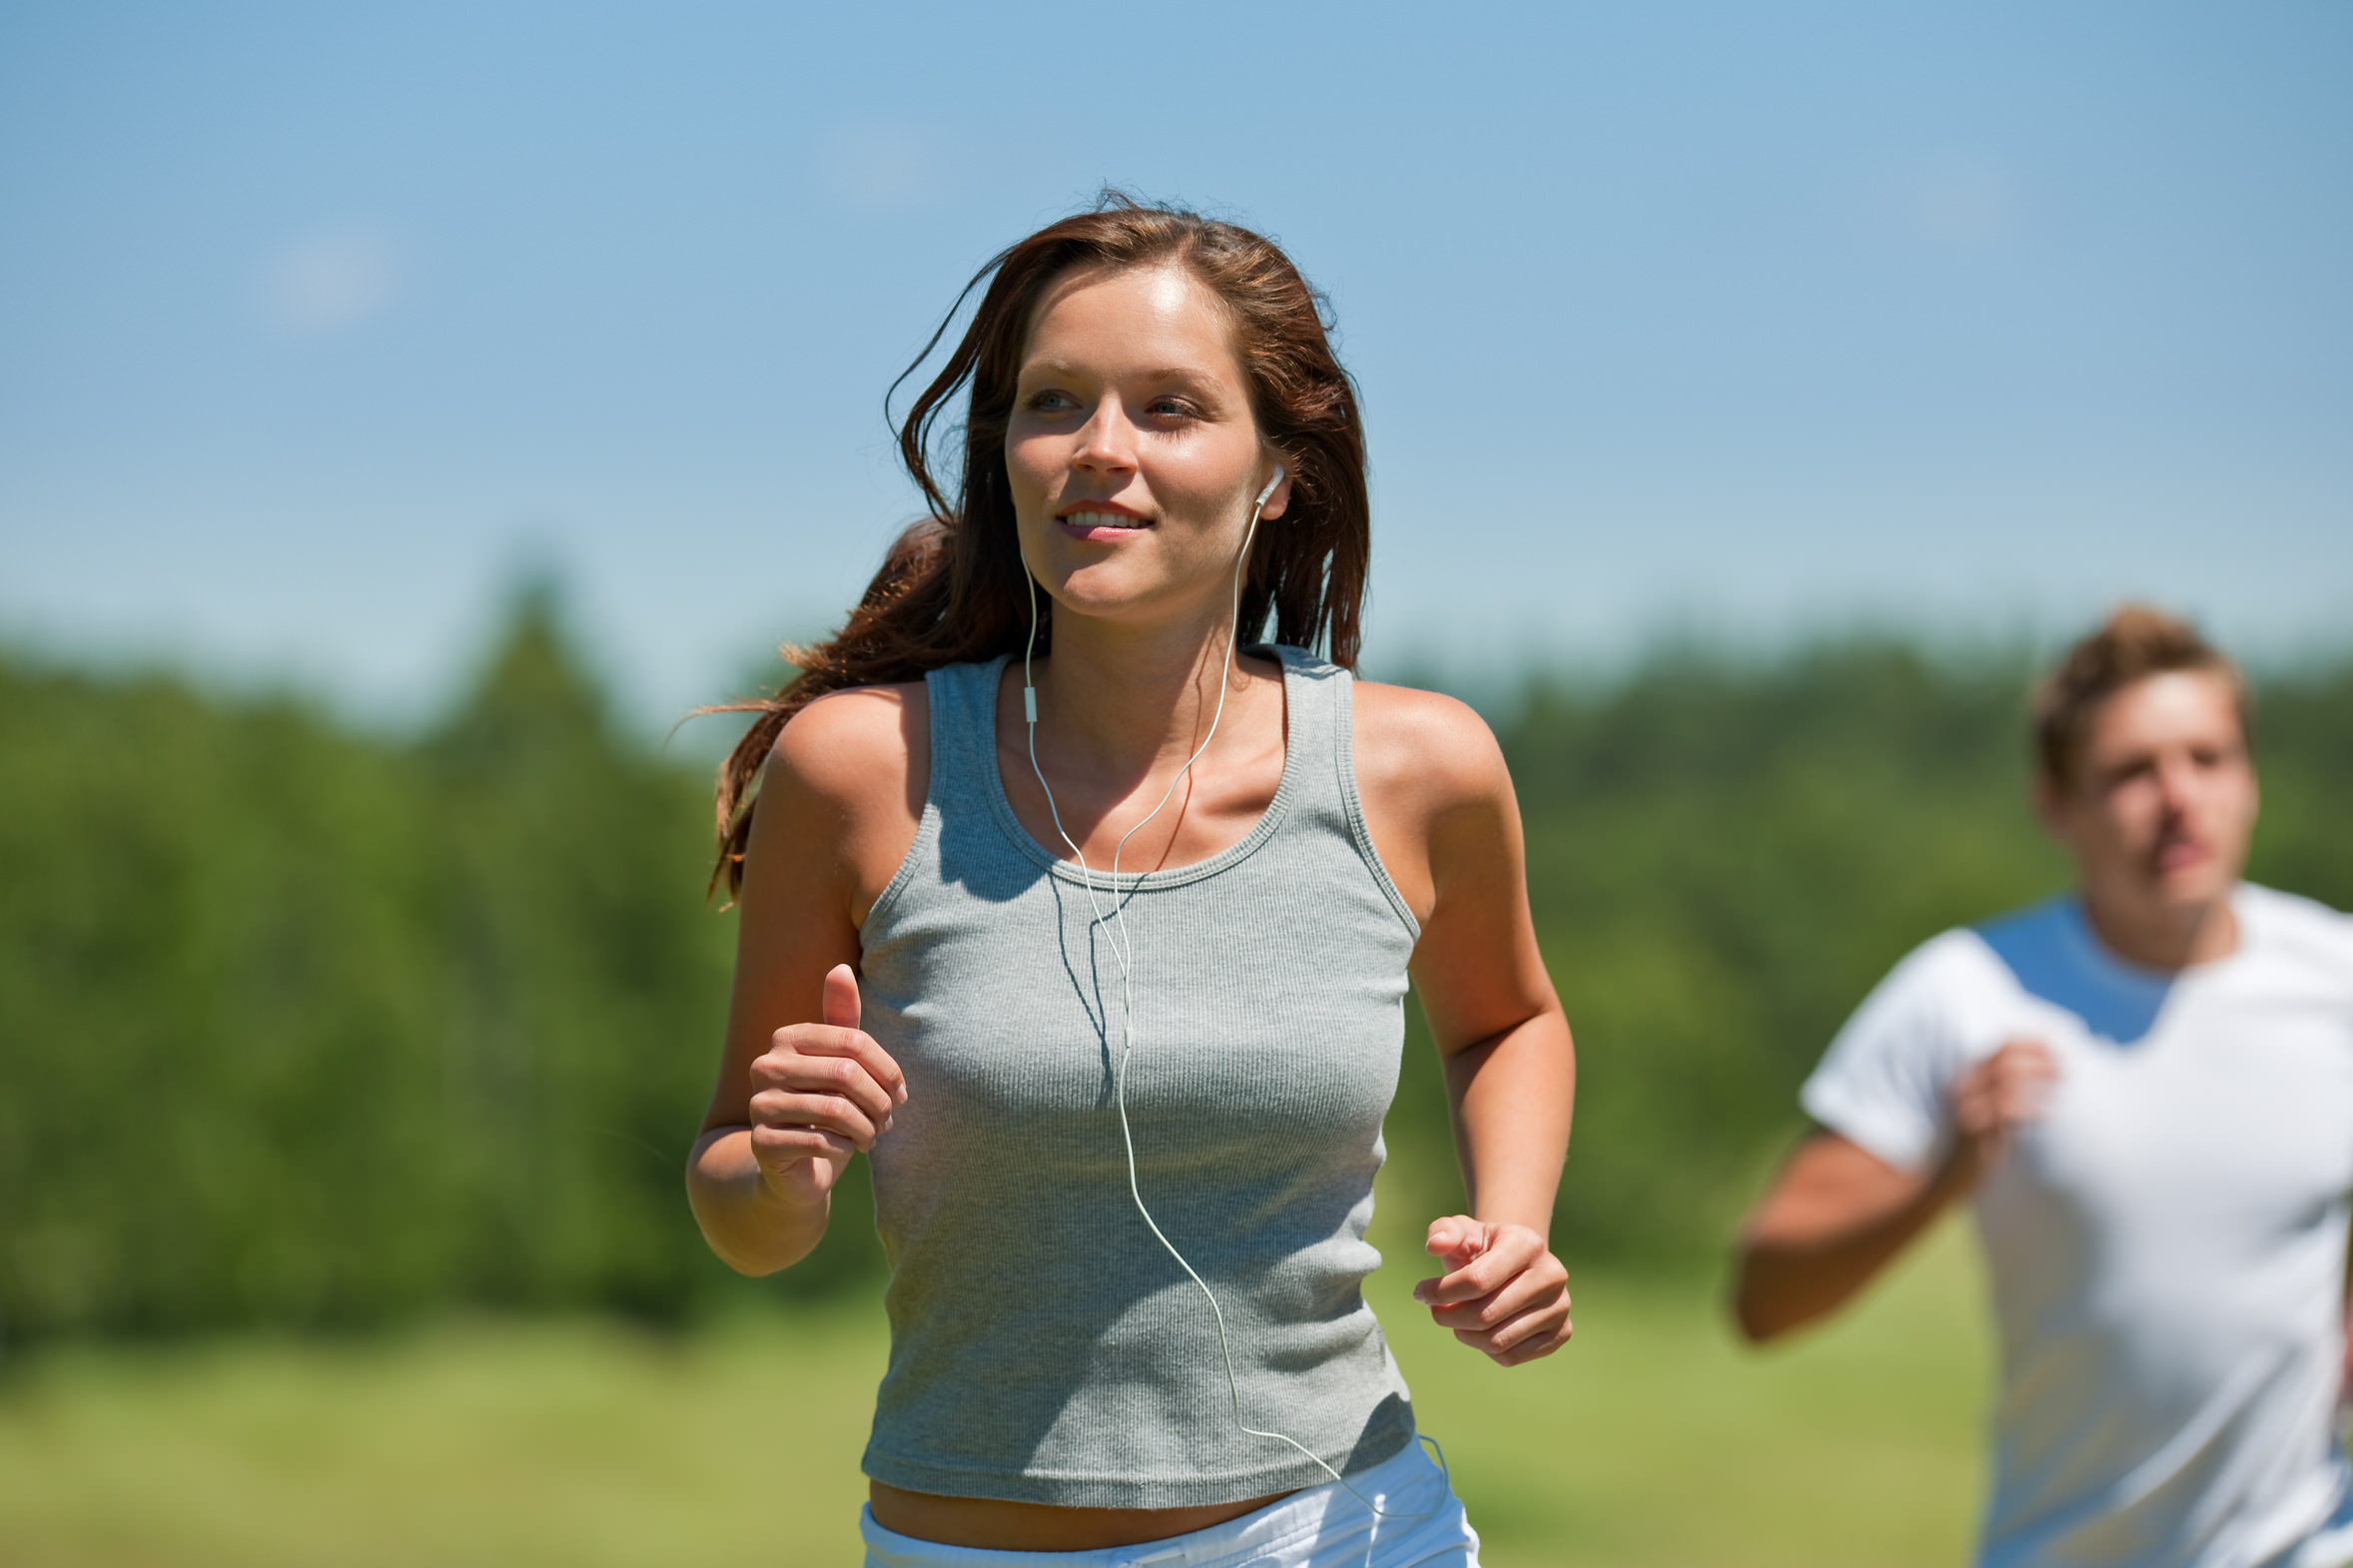 Brown hair woman with headphones jogging